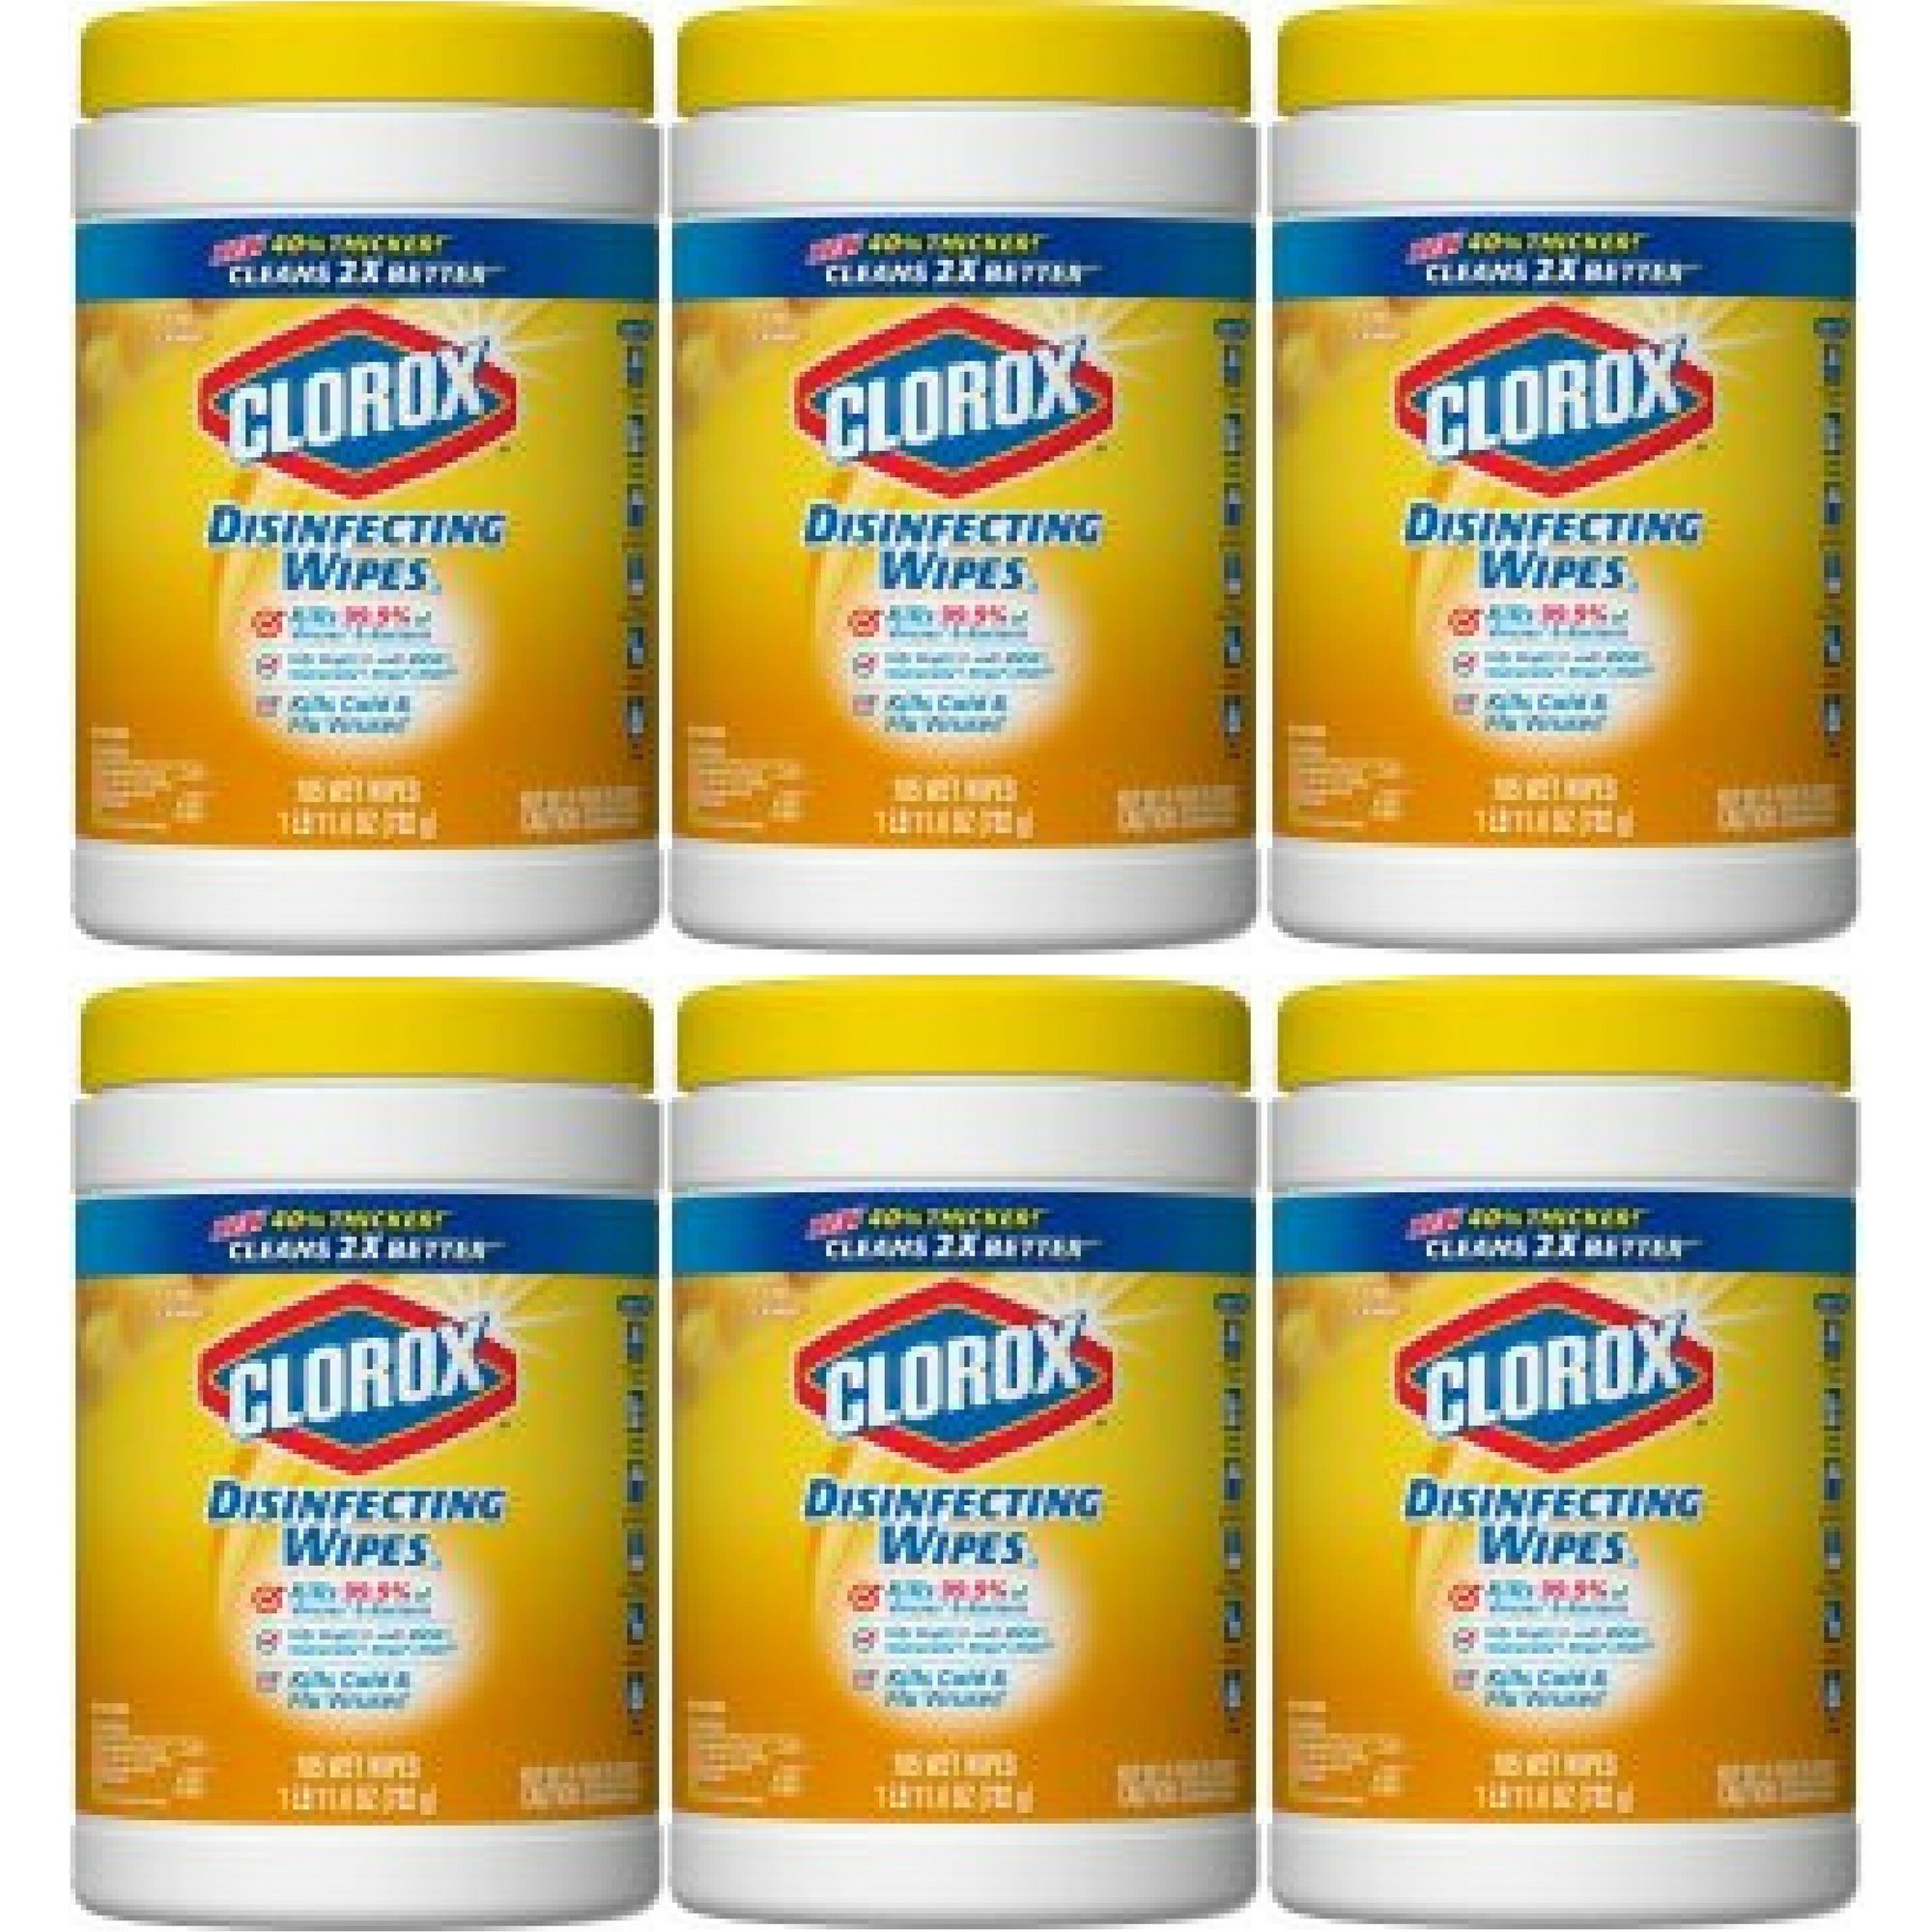 Clorox Disinfecting Wipes, Citrus Blend, 105 Wet Wipes - 6 Packs